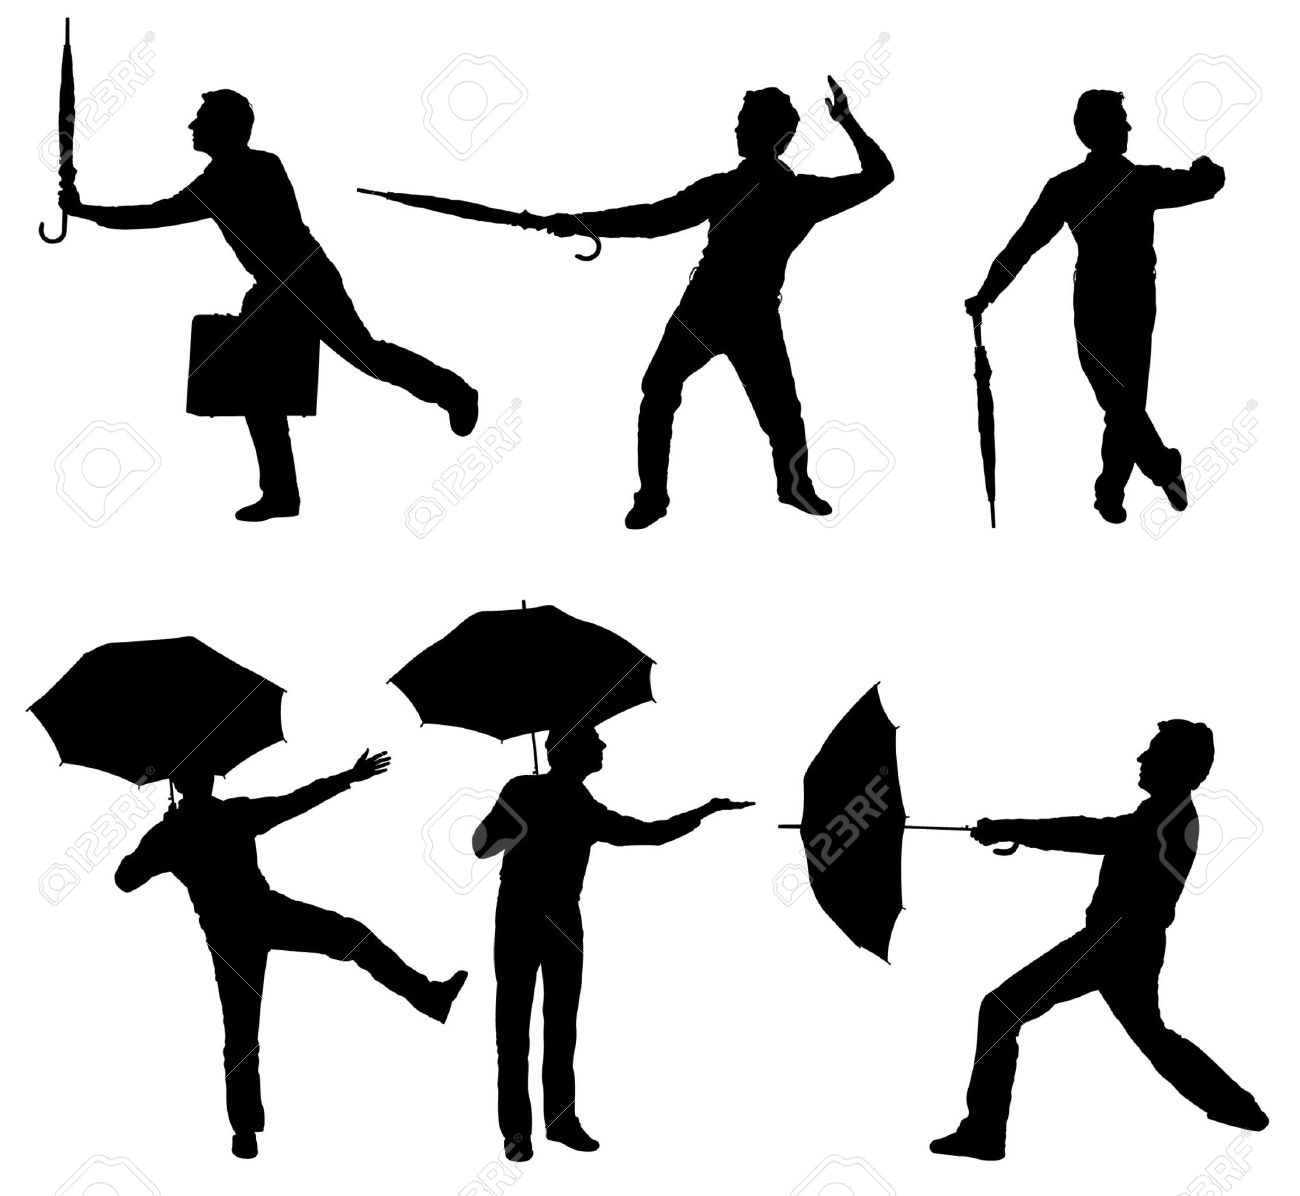 Silhouettes of man holding an umbrella in different poses Stock Vector - 7773850